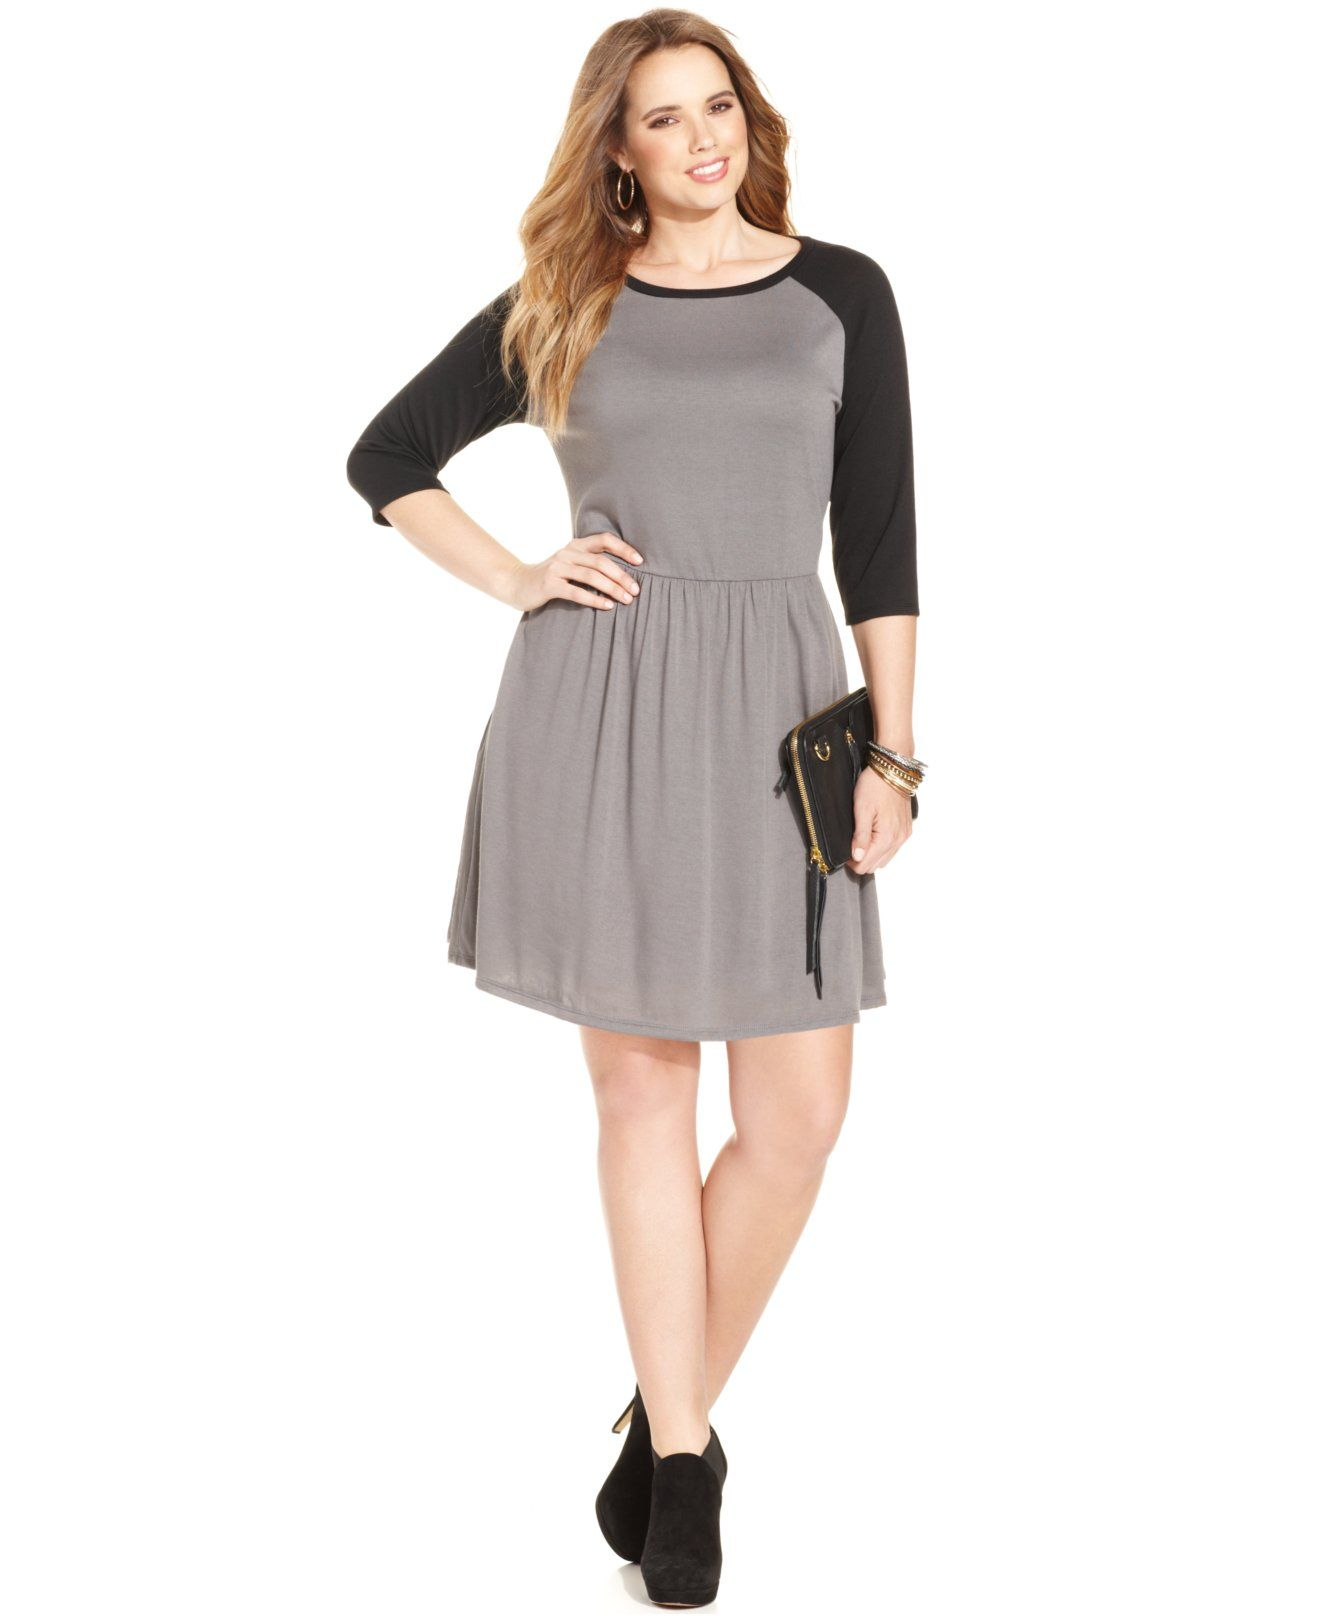 Love Squared Plus Size Three Quarter Sleeve Colorblocked A Line